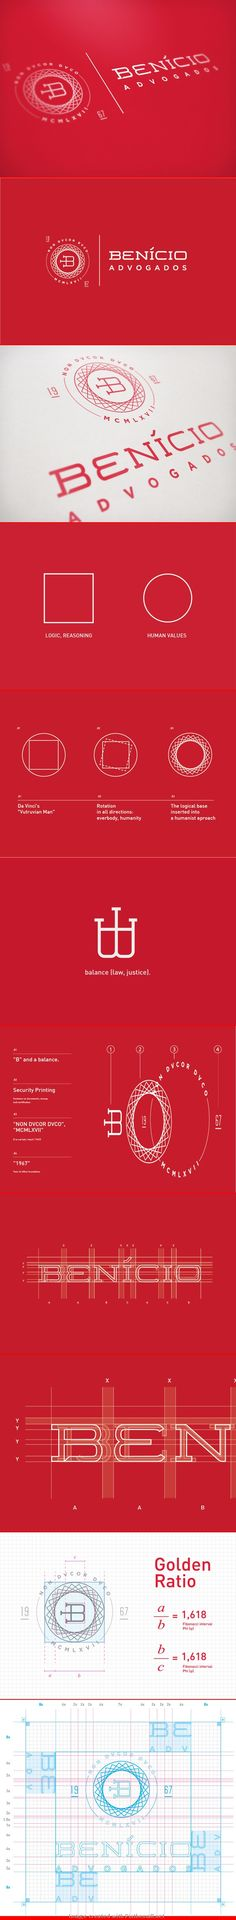 Benício Lawyers | #logo #design Costruction                                                                                                                                                      More